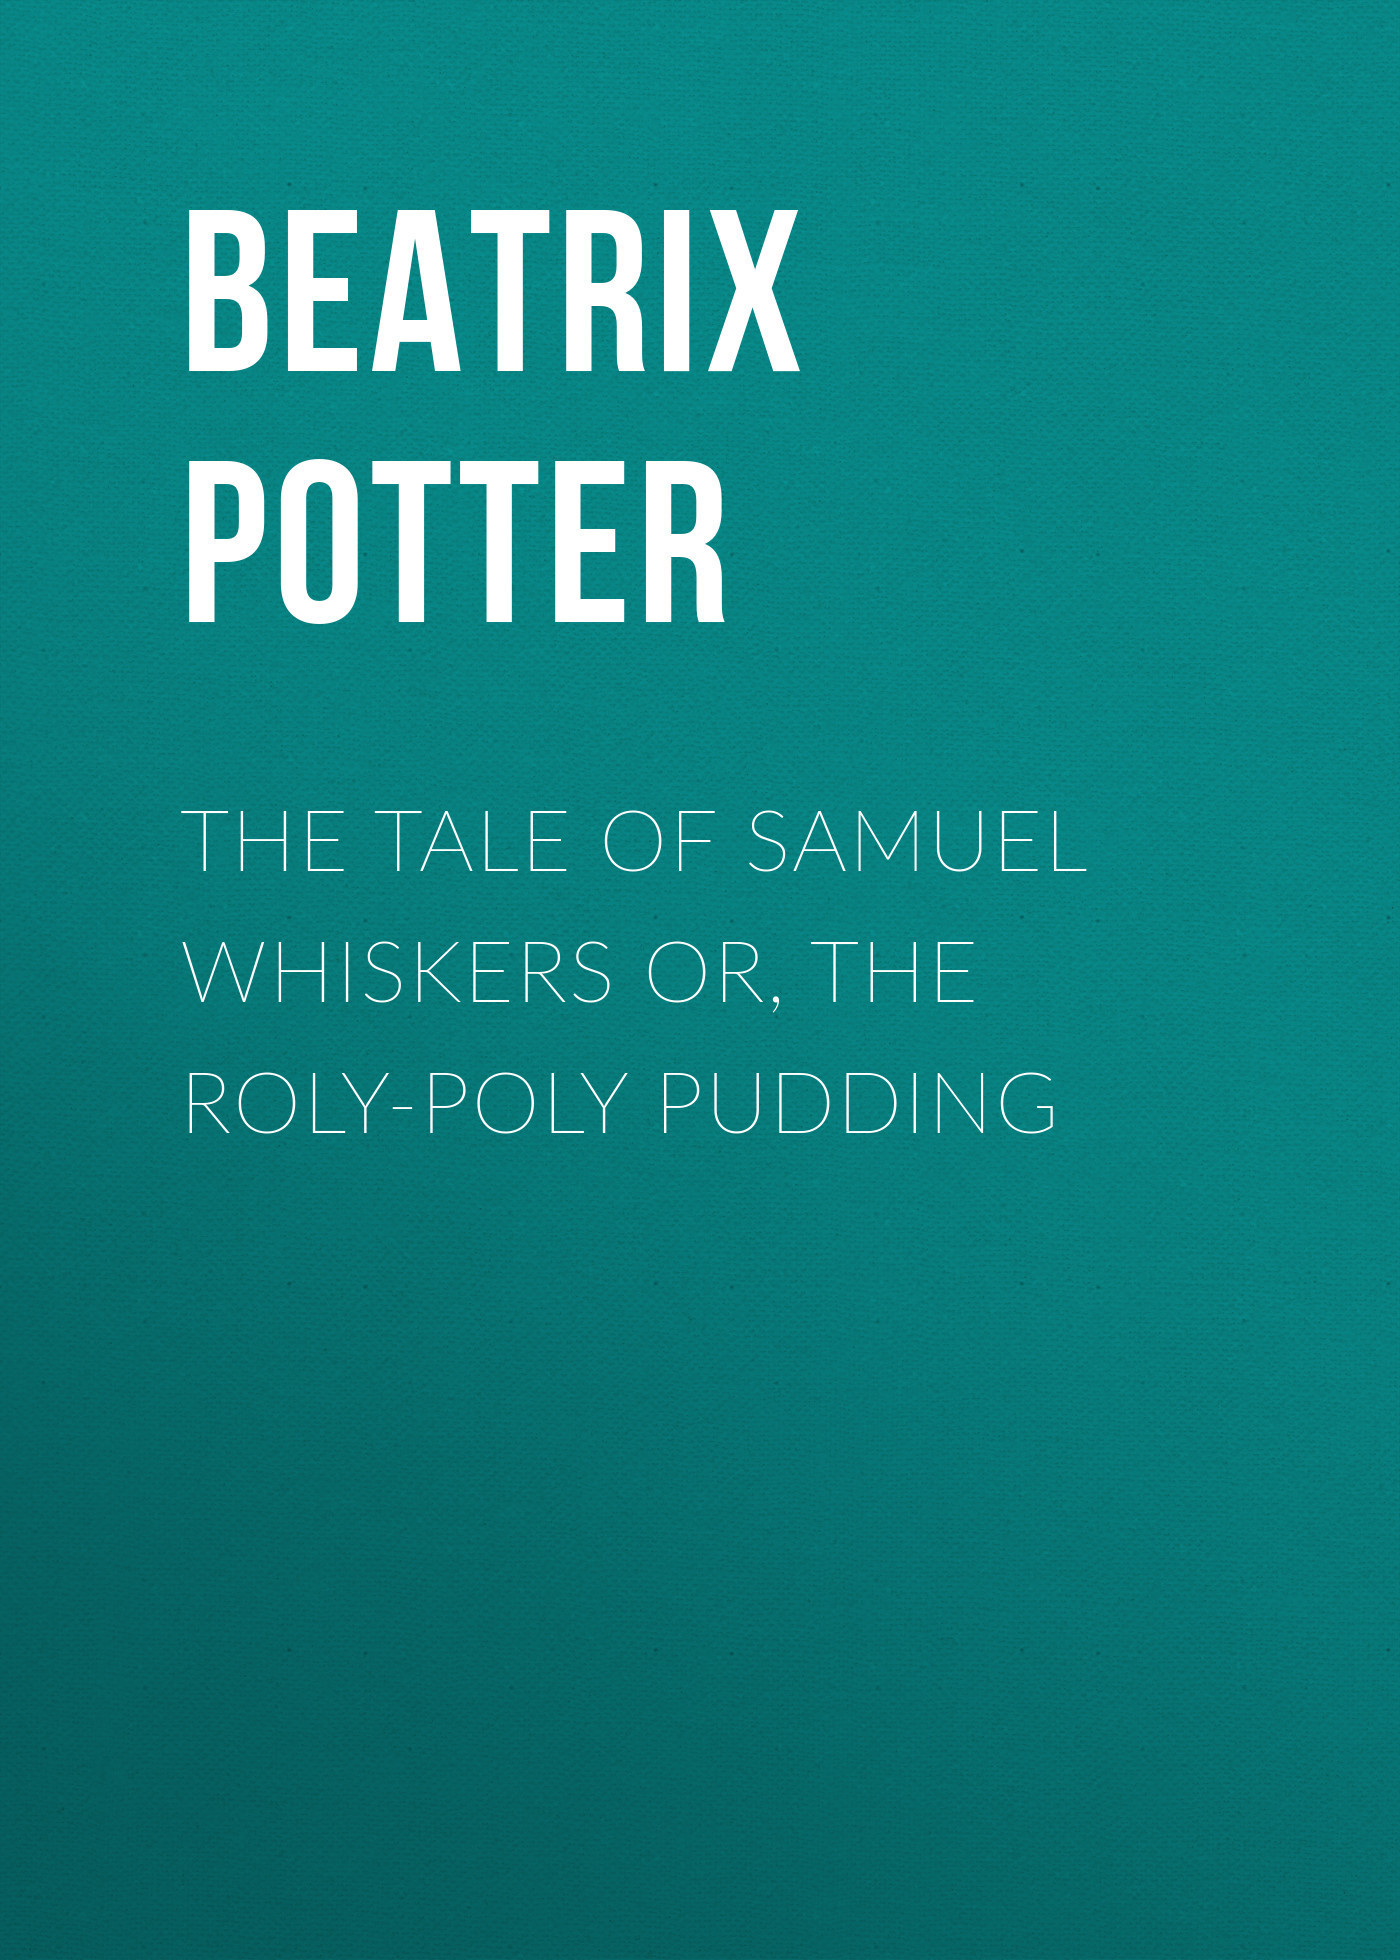 Беатрис Поттер The Tale of Samuel Whiskers or, The Roly-Poly Pudding пижамы roly poly комплект